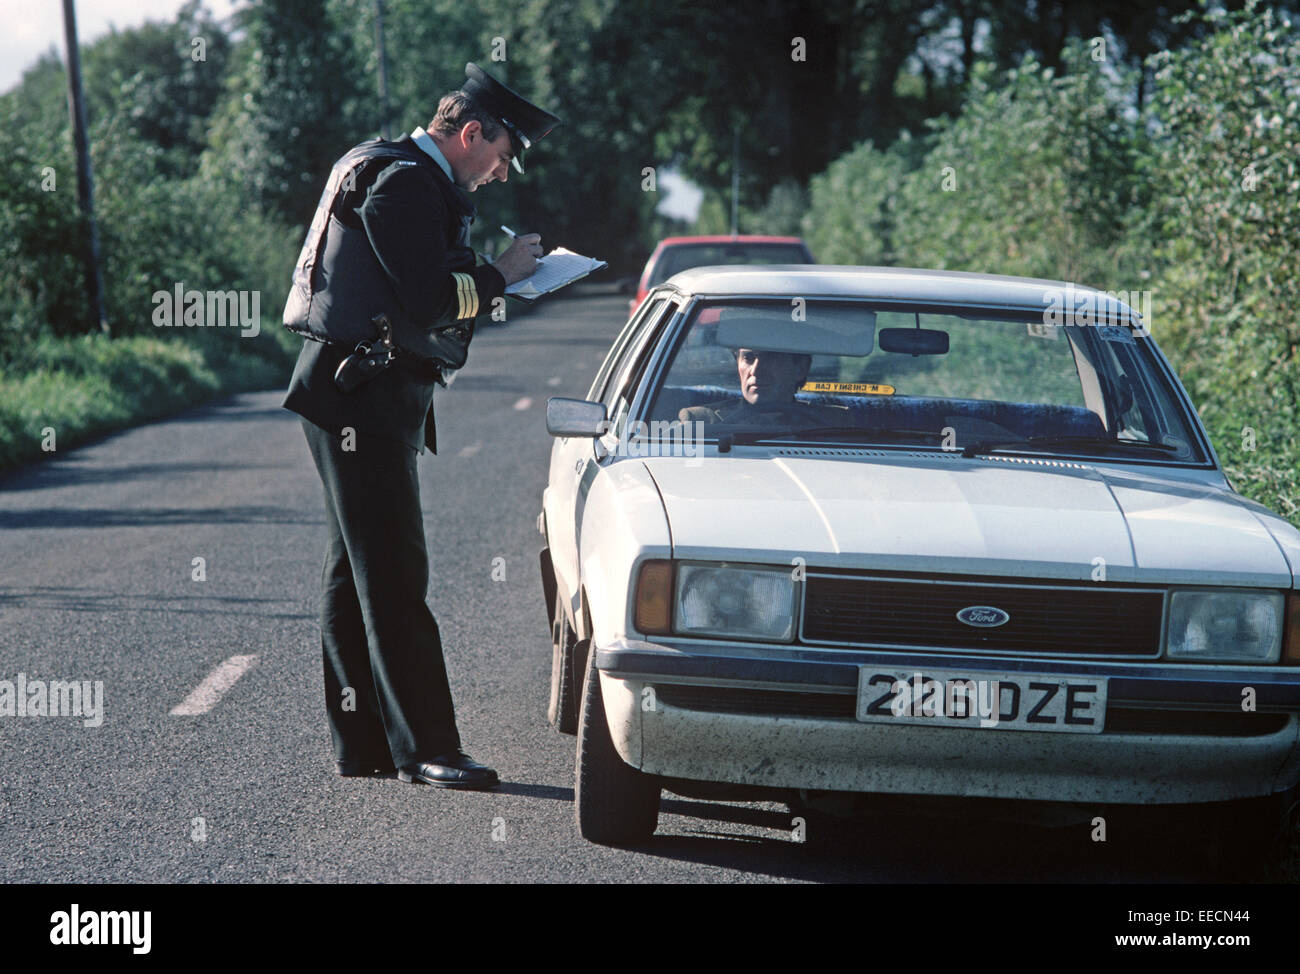 COUNTY TYRONE, UNITED KINGDOM-SEPTEMBER 1980. RUC, Royal Ulster Constabulary, police on Vehicle Stop during the Stock Photo